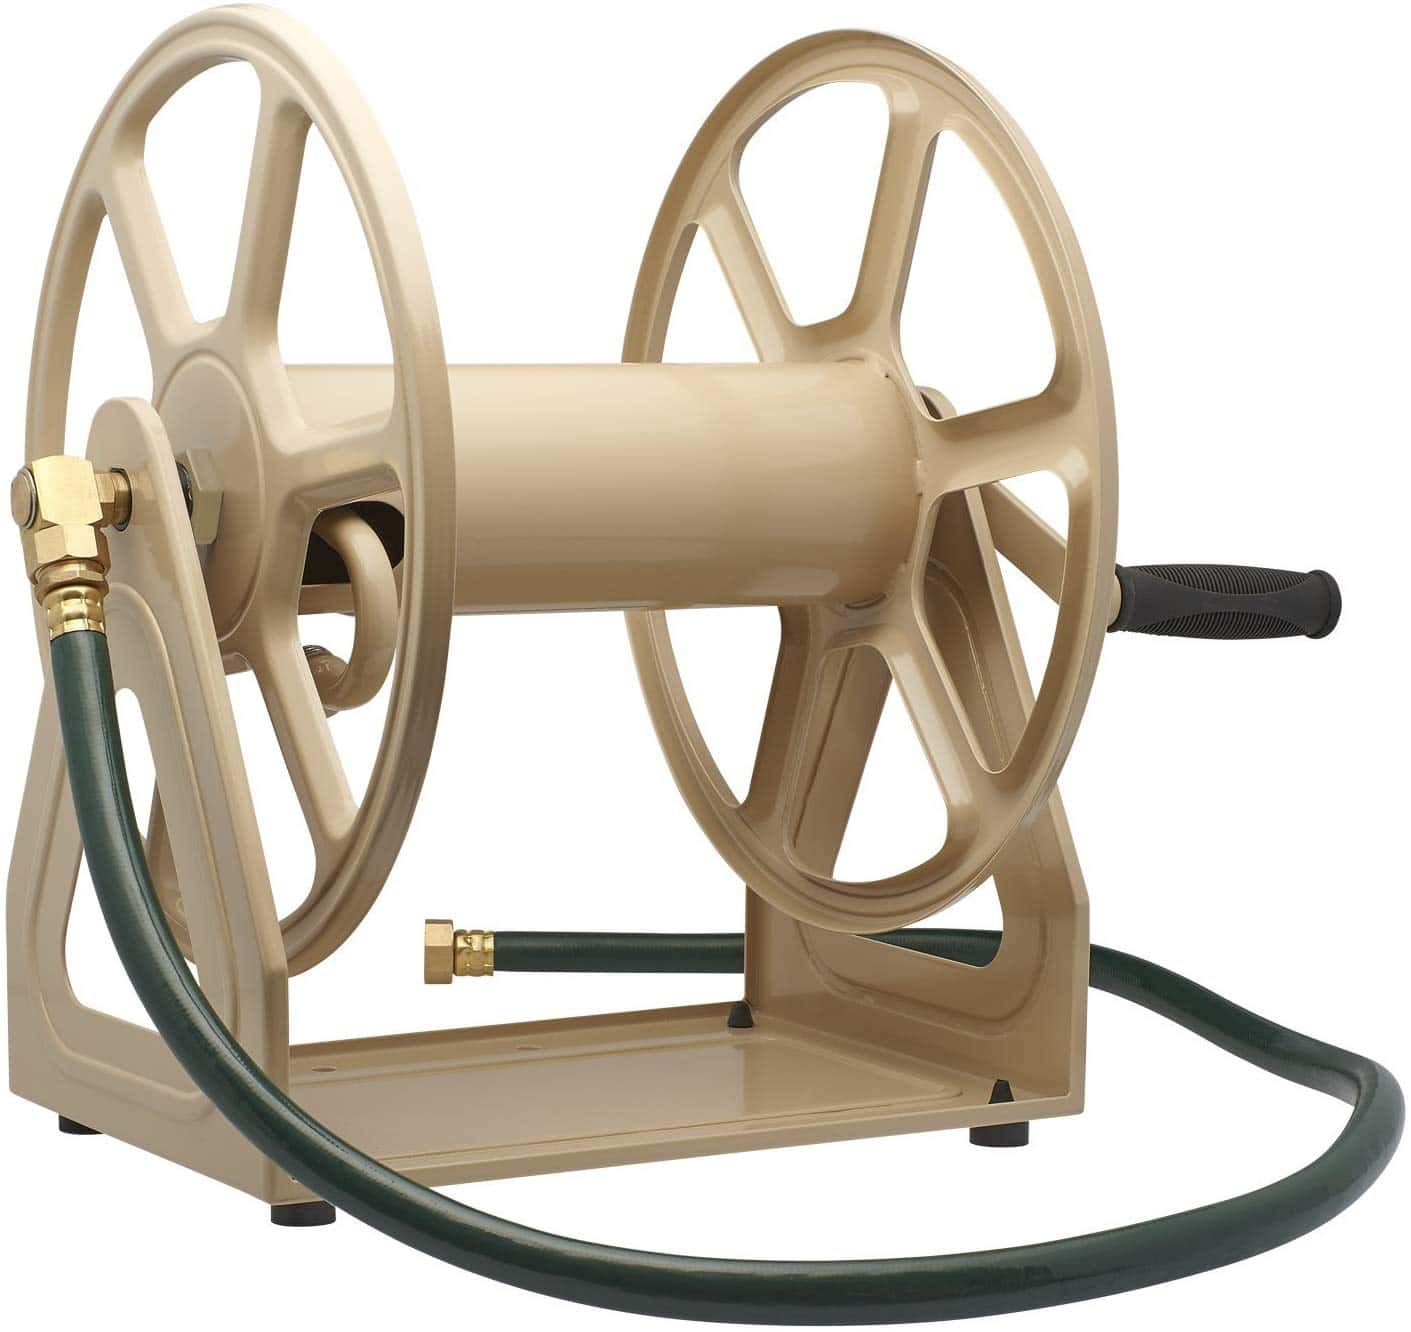 9.Liberty Garden 709 Steel Wall Floor Mounted Hose Reel, Holds 200-Feet of 5 8-Inch Hose - Tan